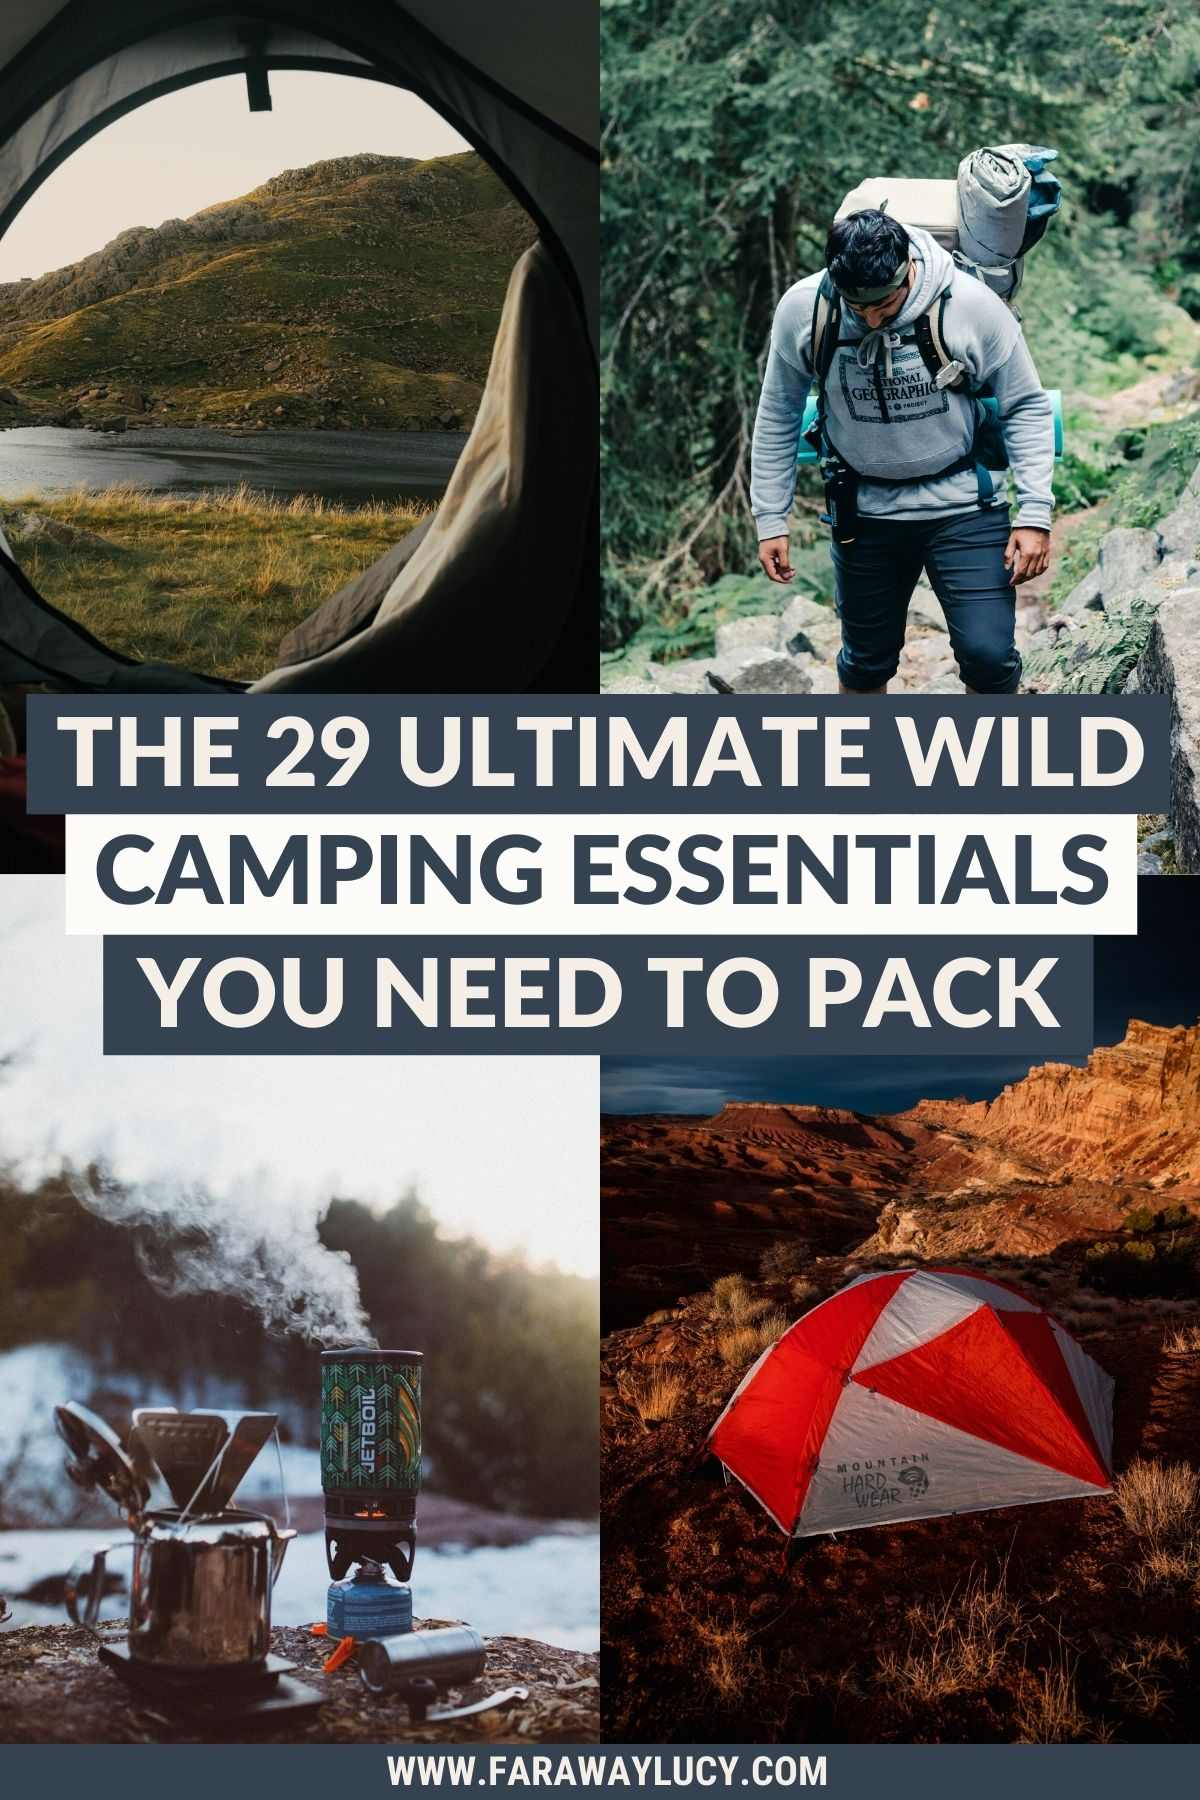 The 29 Ultimate Wild Camping Essentials You Need to Pack